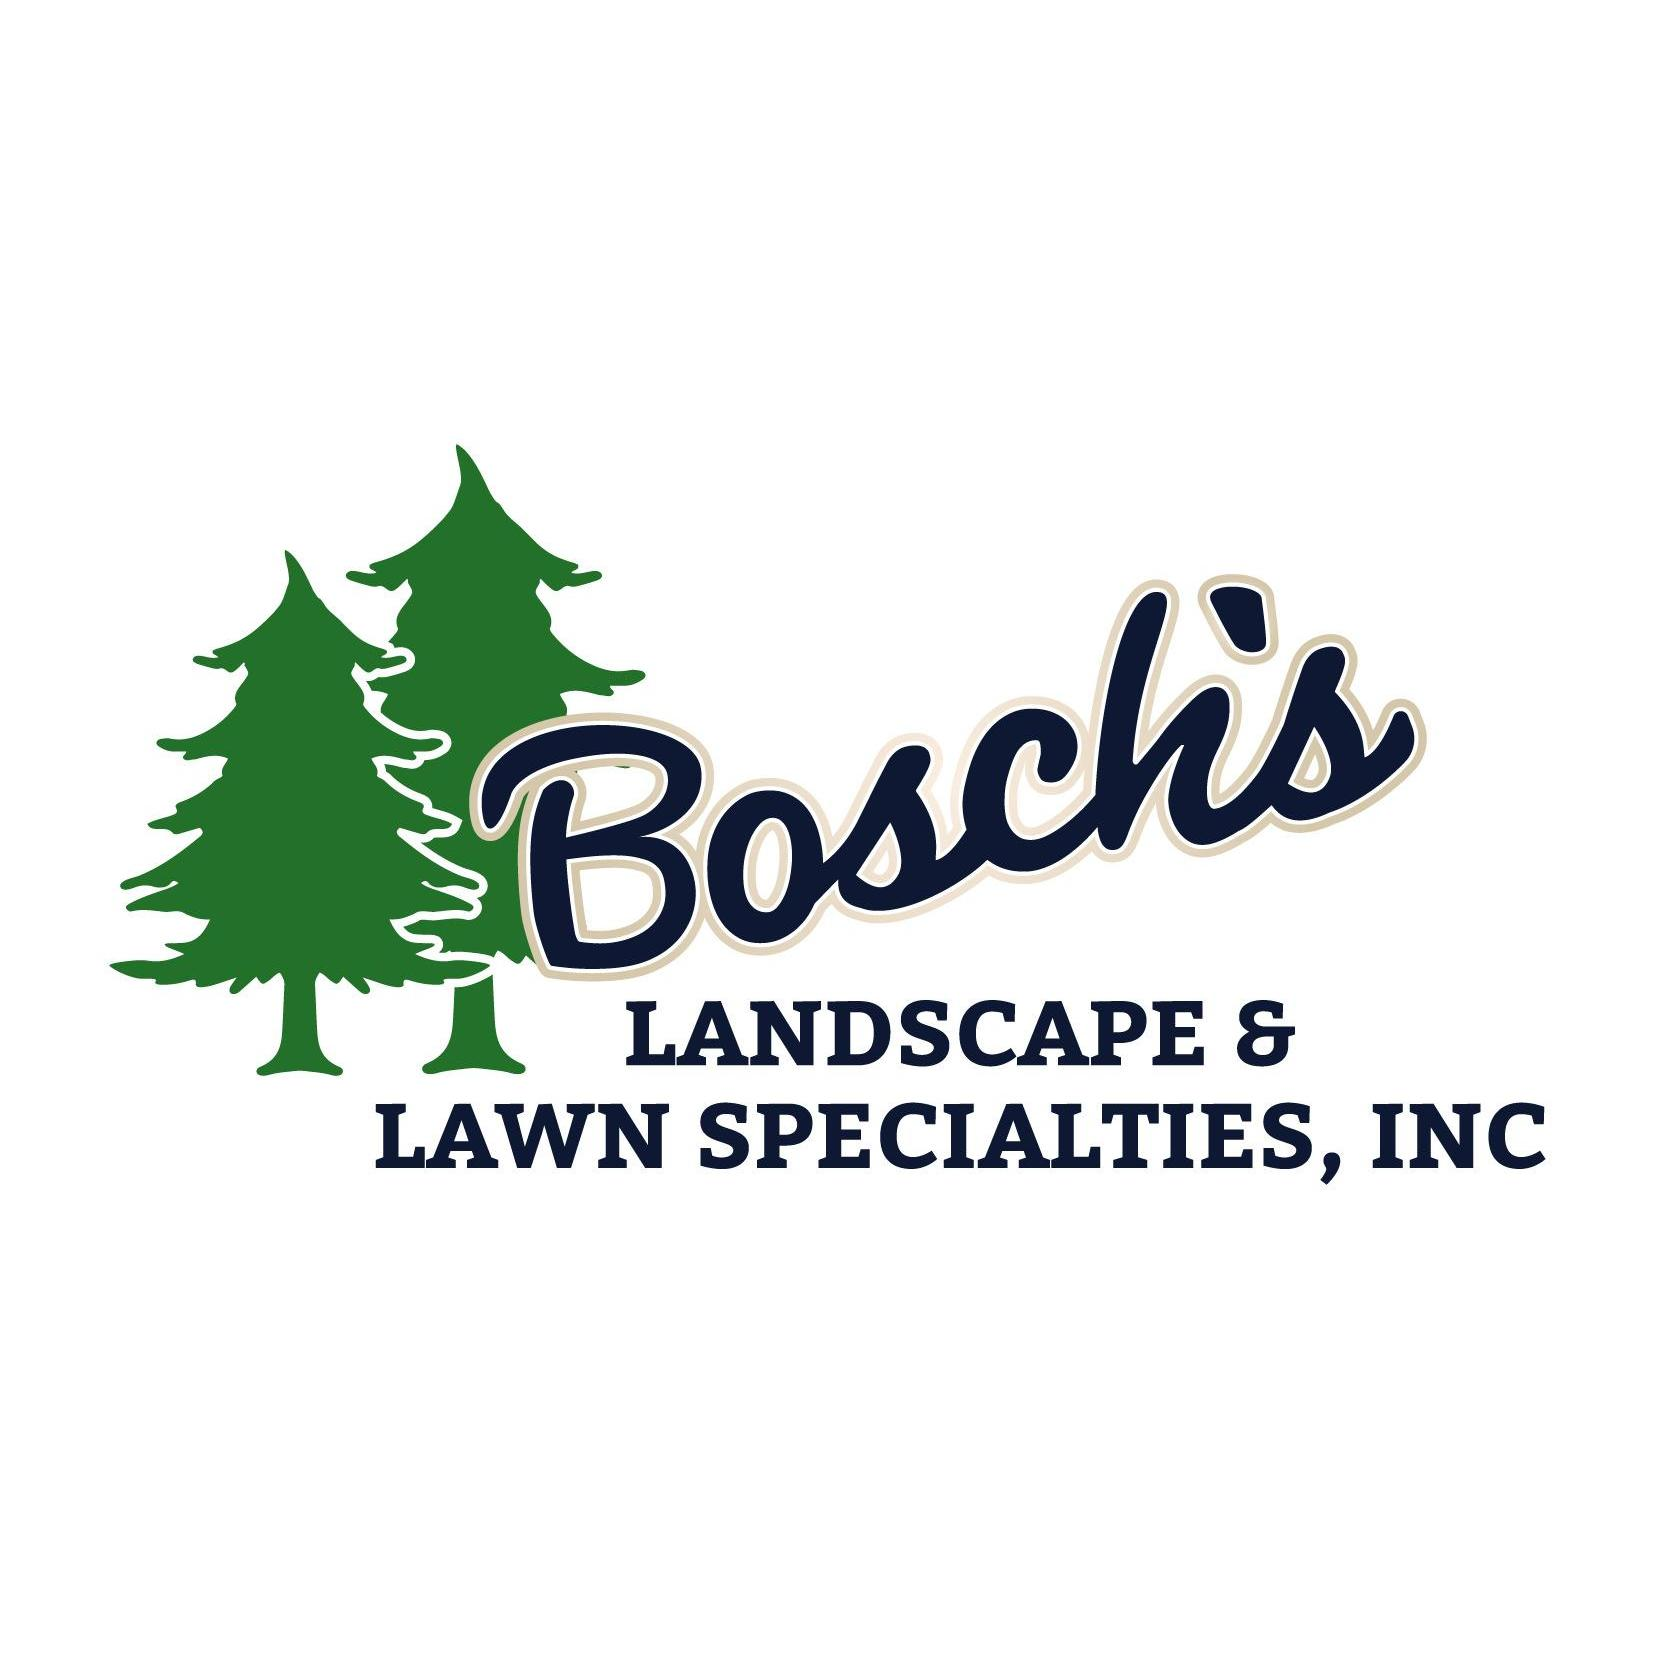 Bosch S Landscaping Amp Lawn Specialties Inc In Holland Mi